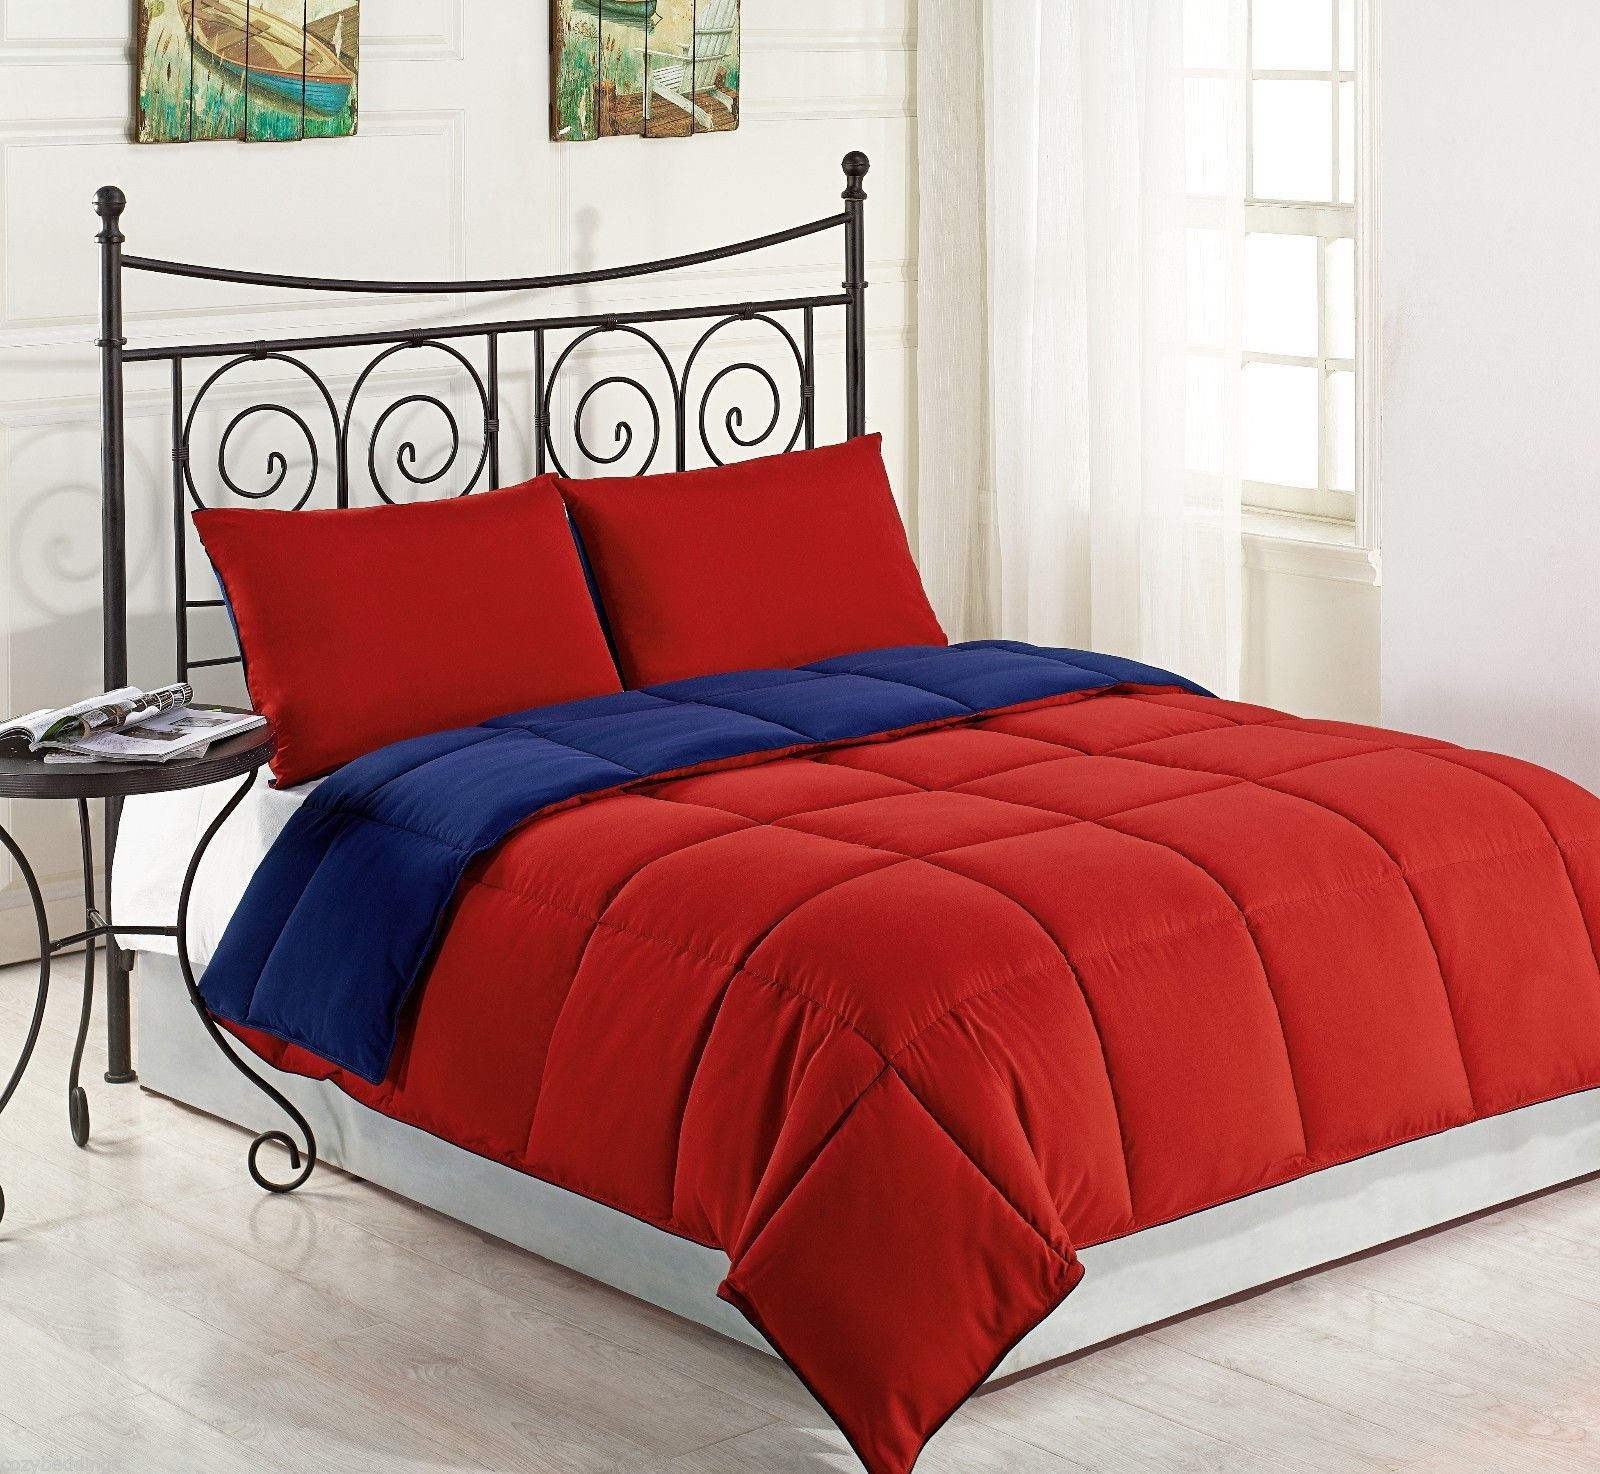 Fenesta Décor 100 % Egyptian Cotton Reversible Comforter With 2 Matching Pillow shams Set Full/Queen (Blood Red/ Royal Blue)